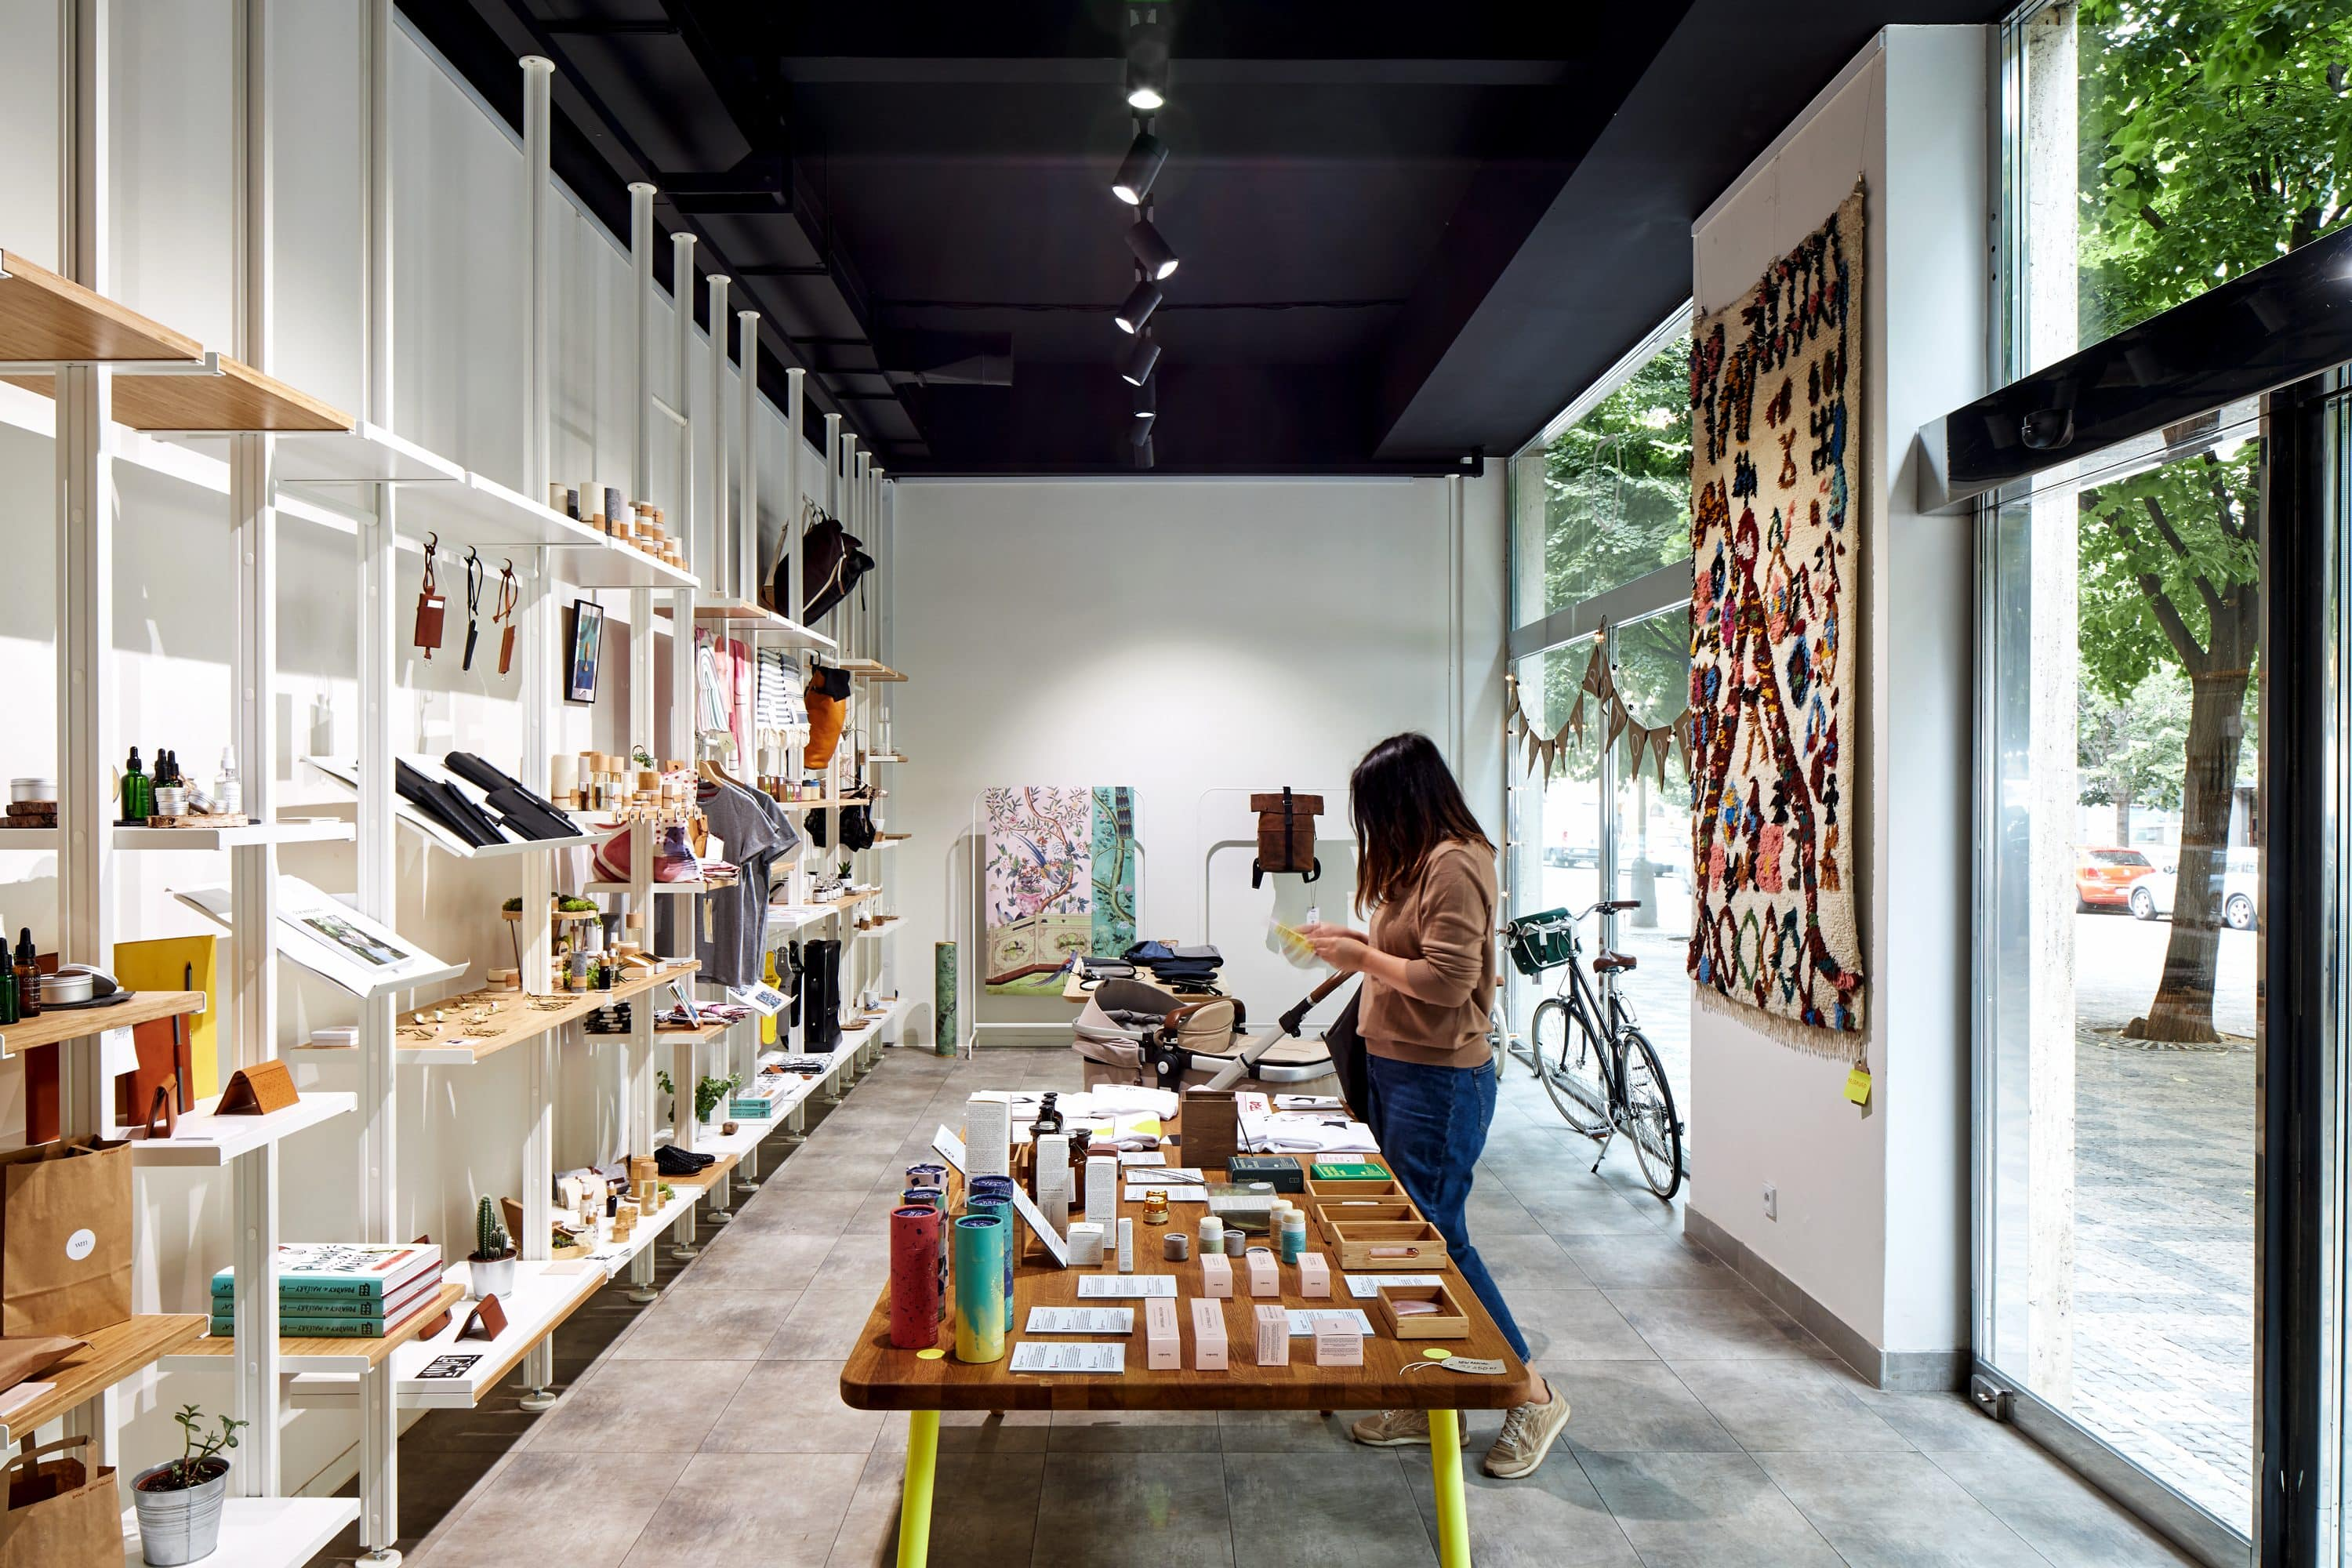 A woman browses design trinkets at Shop Up Stories